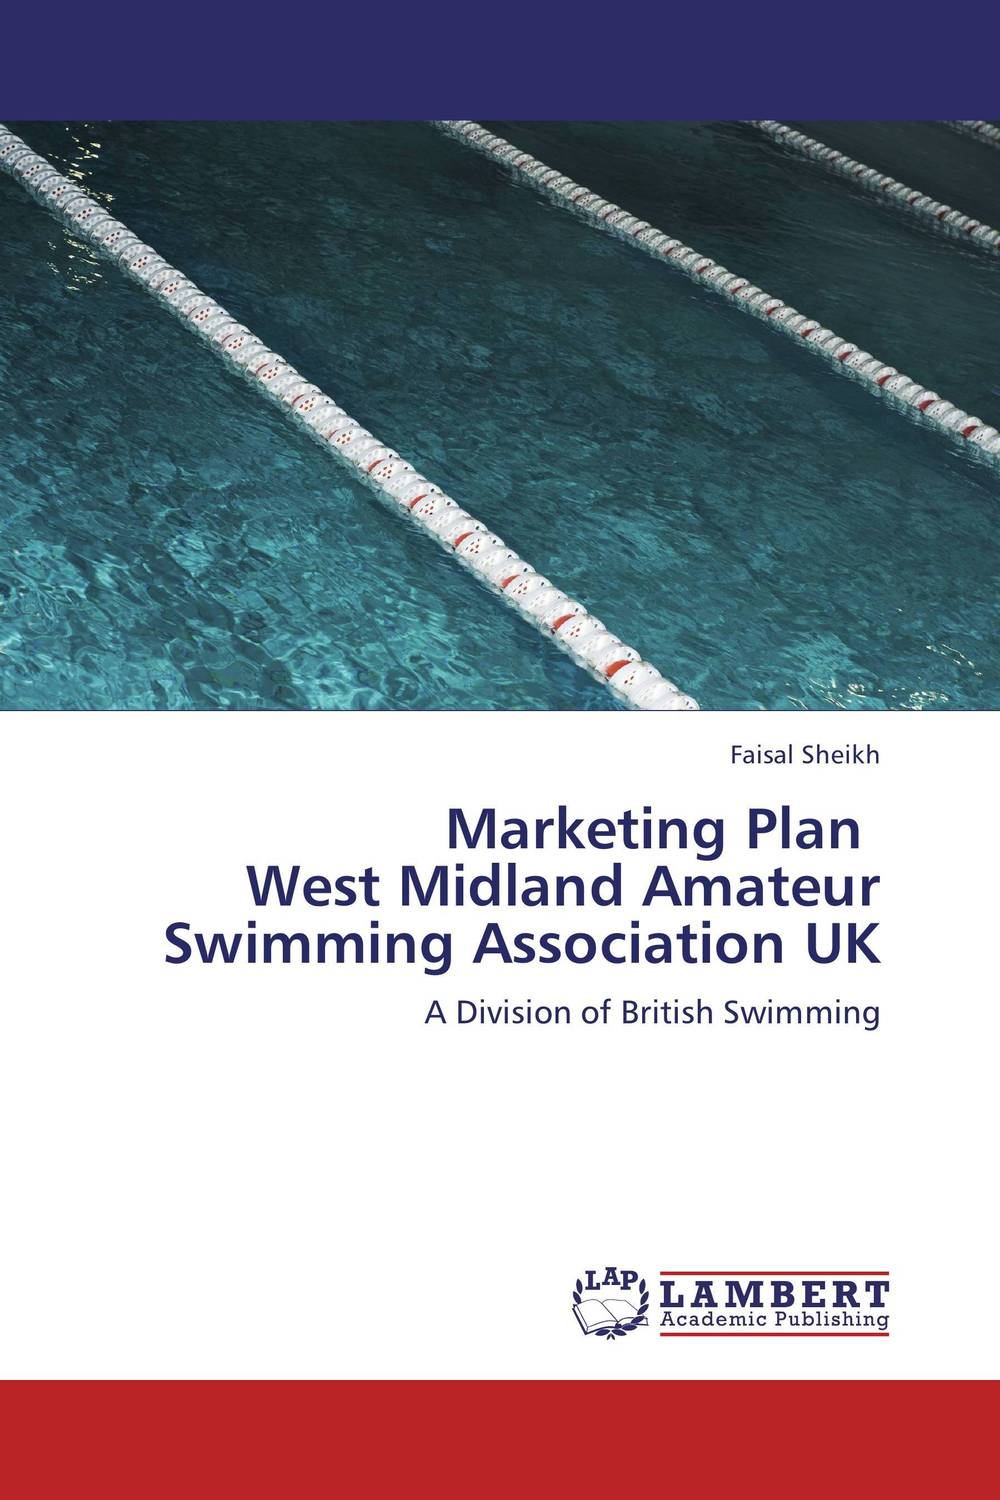 Marketing Plan   West Midland Amateur Swimming Association UK midland lxt 425